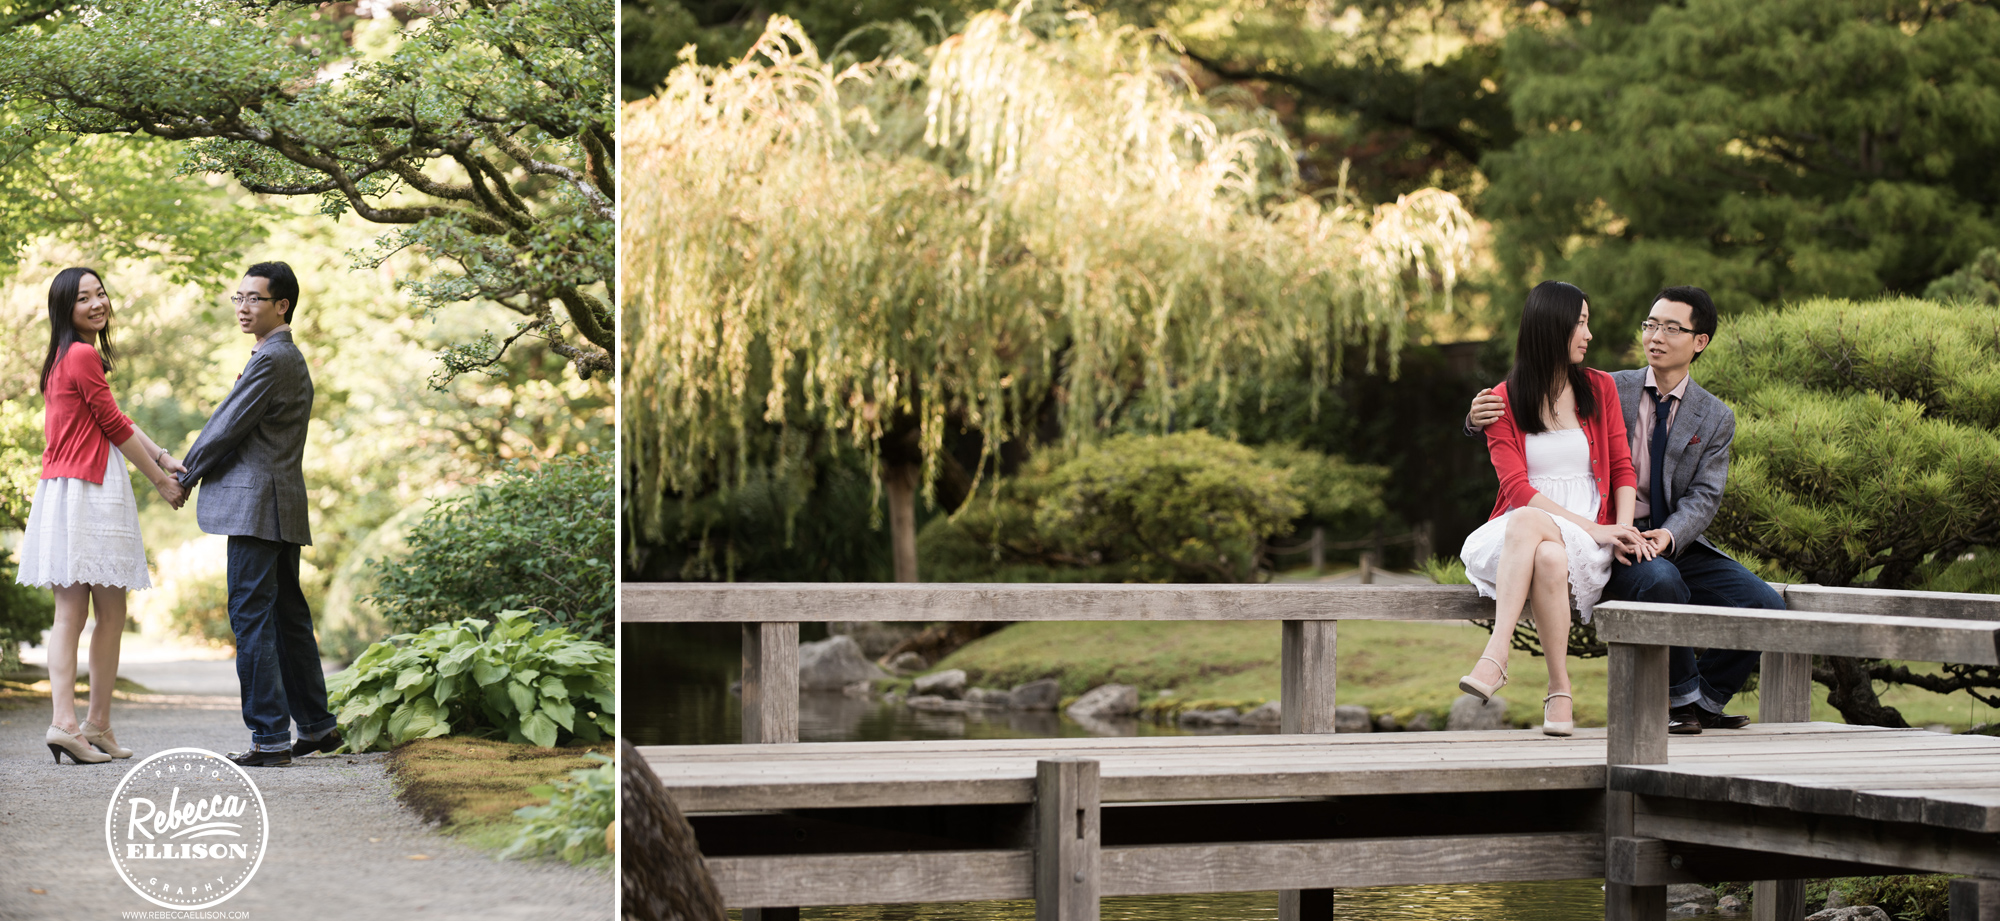 University of Washington Japanese Garden engagement portraits a couple sits on a wooden bench photographed by Seattle engagement photographer Rebecca Ellison